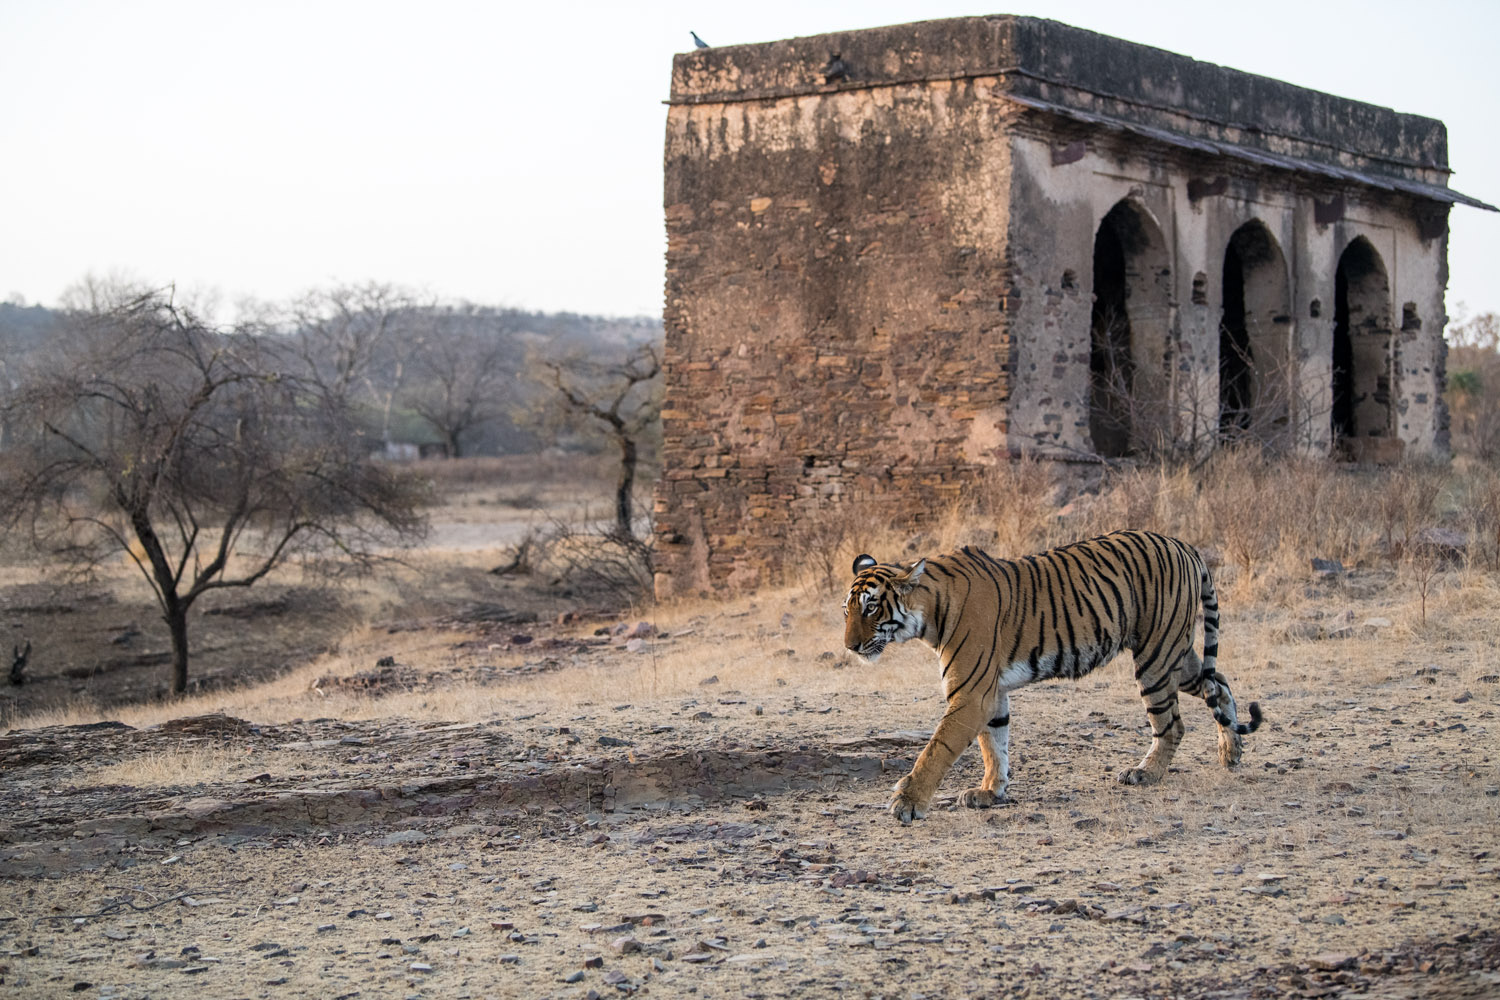 Bengal tigress walking close to historic hunting palace outbuilding, Ranthambhore National Park, Rajasthan, India